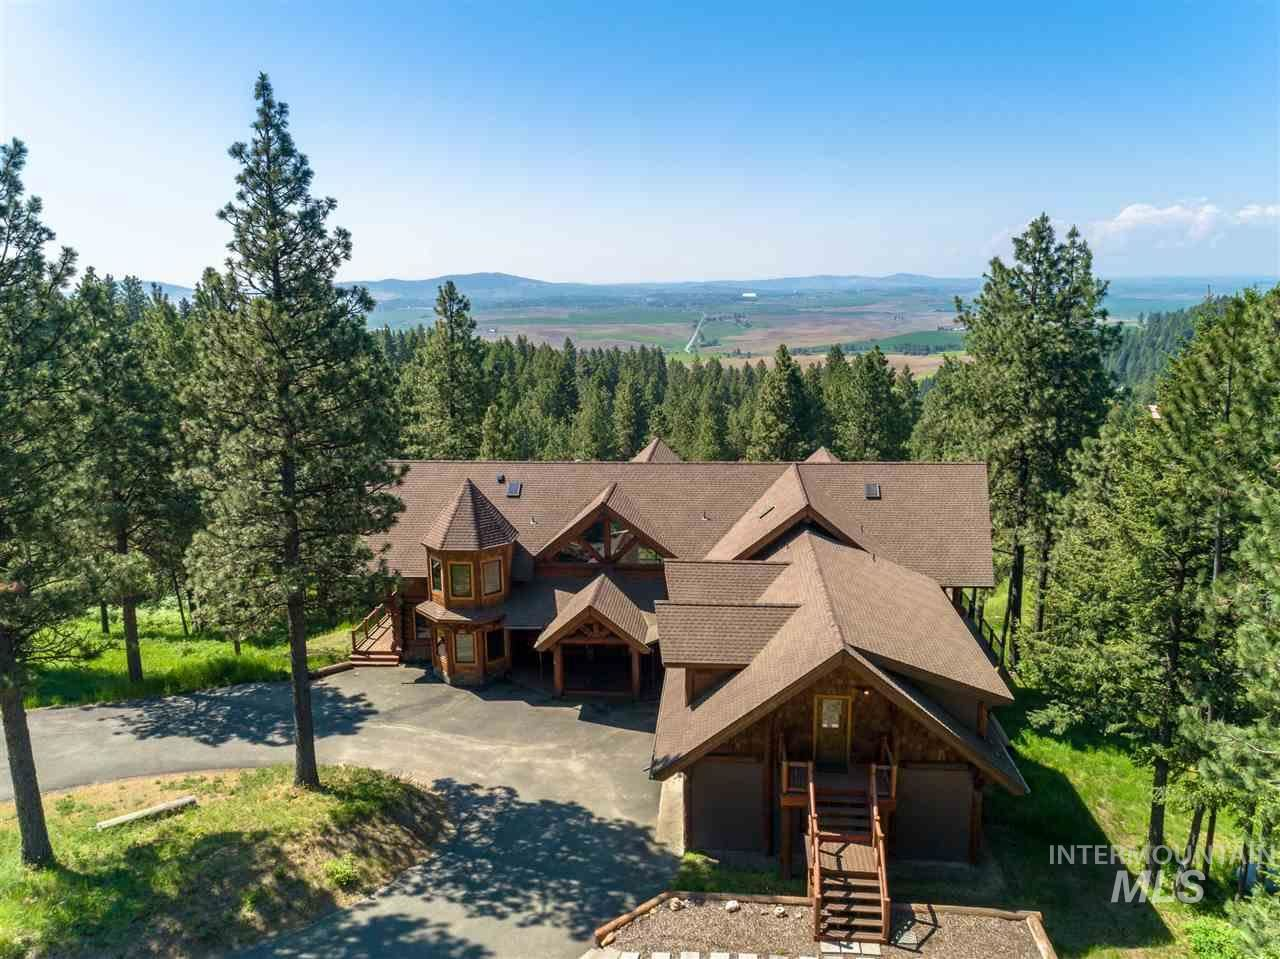 1050 Greenview Lane, Moscow, ID 83843-8726 - MLS#: 98800738